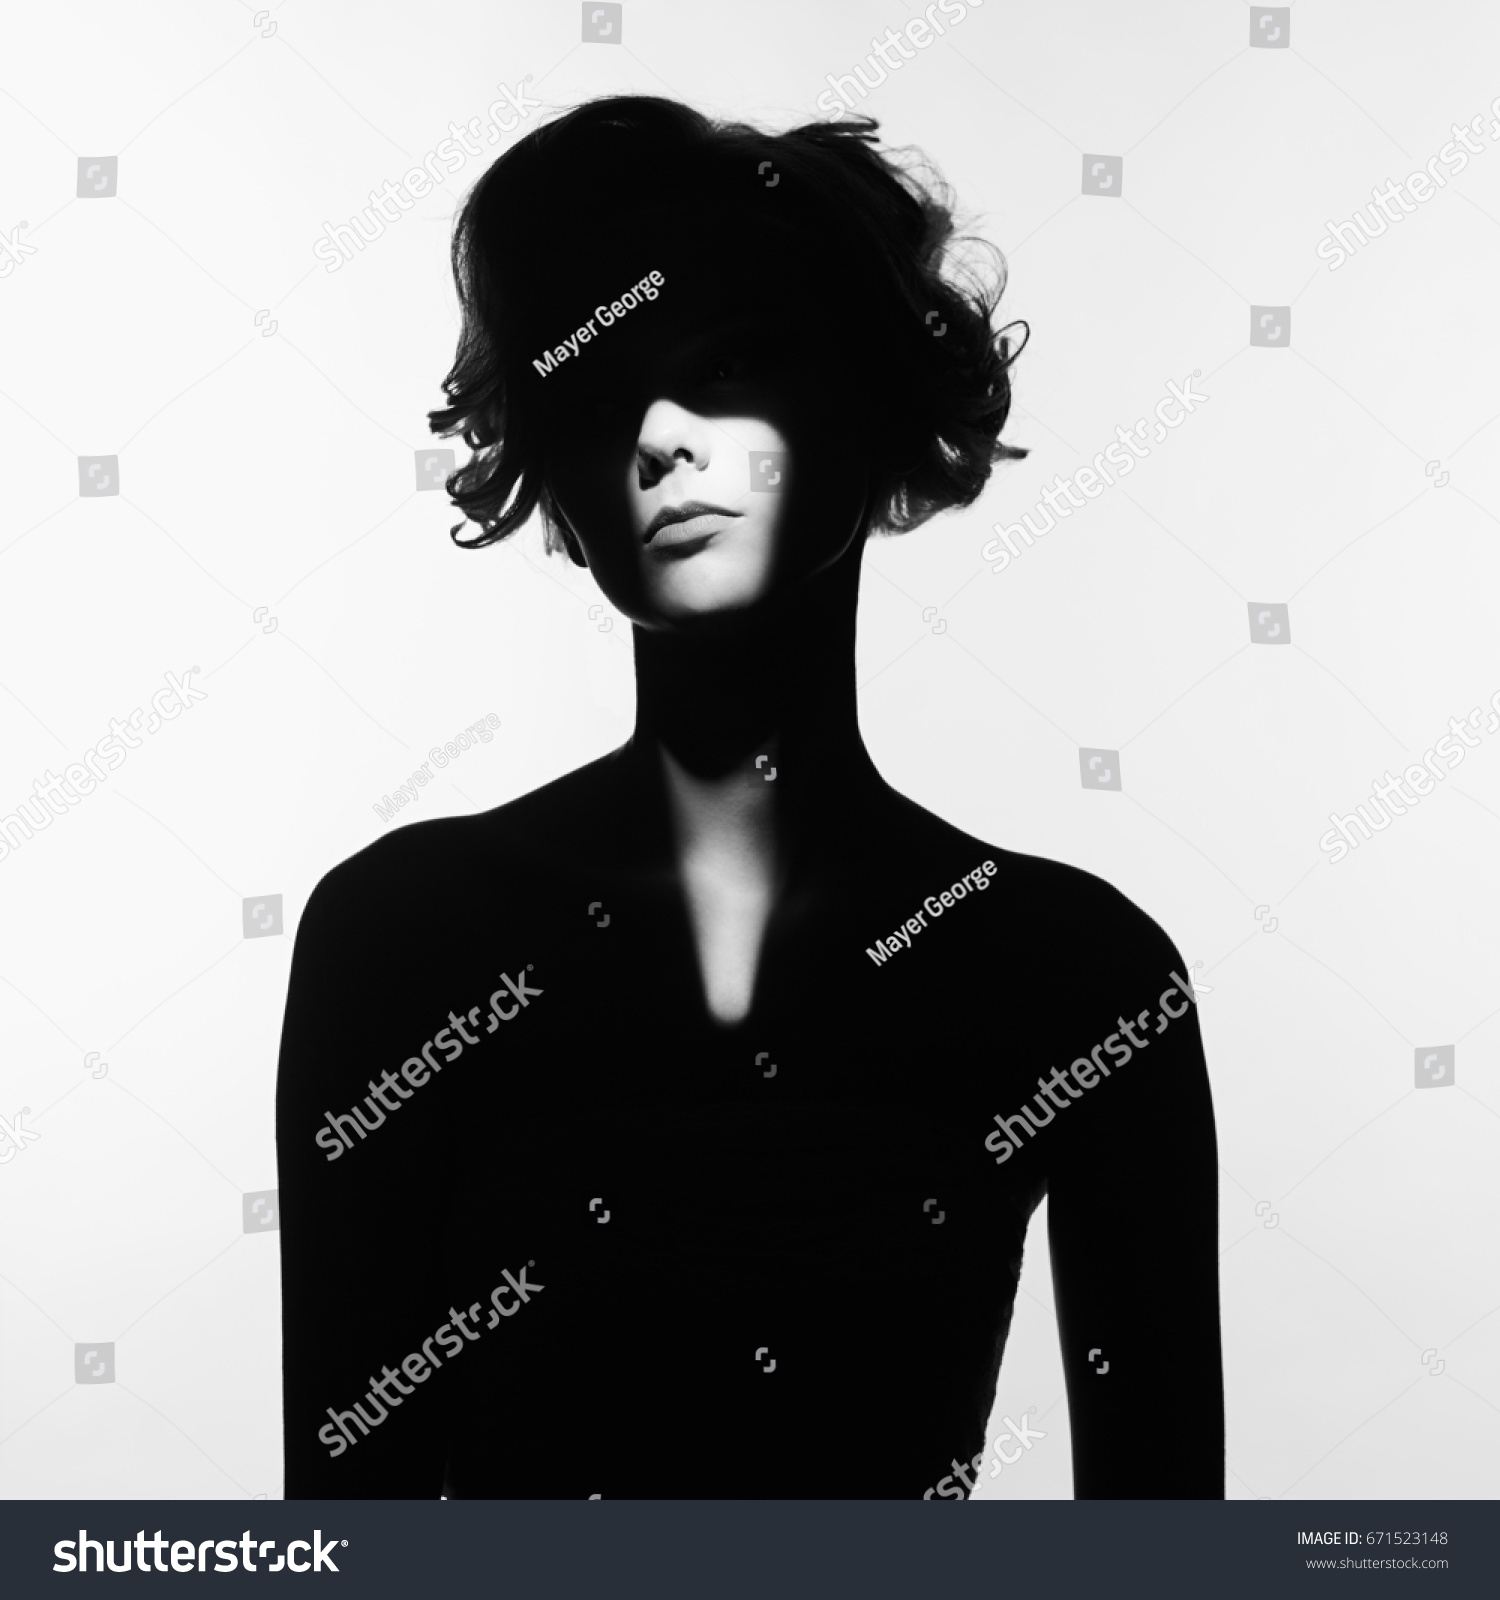 Black and white art fashion surrealistic portrait of beautiful woman with a beam of light on